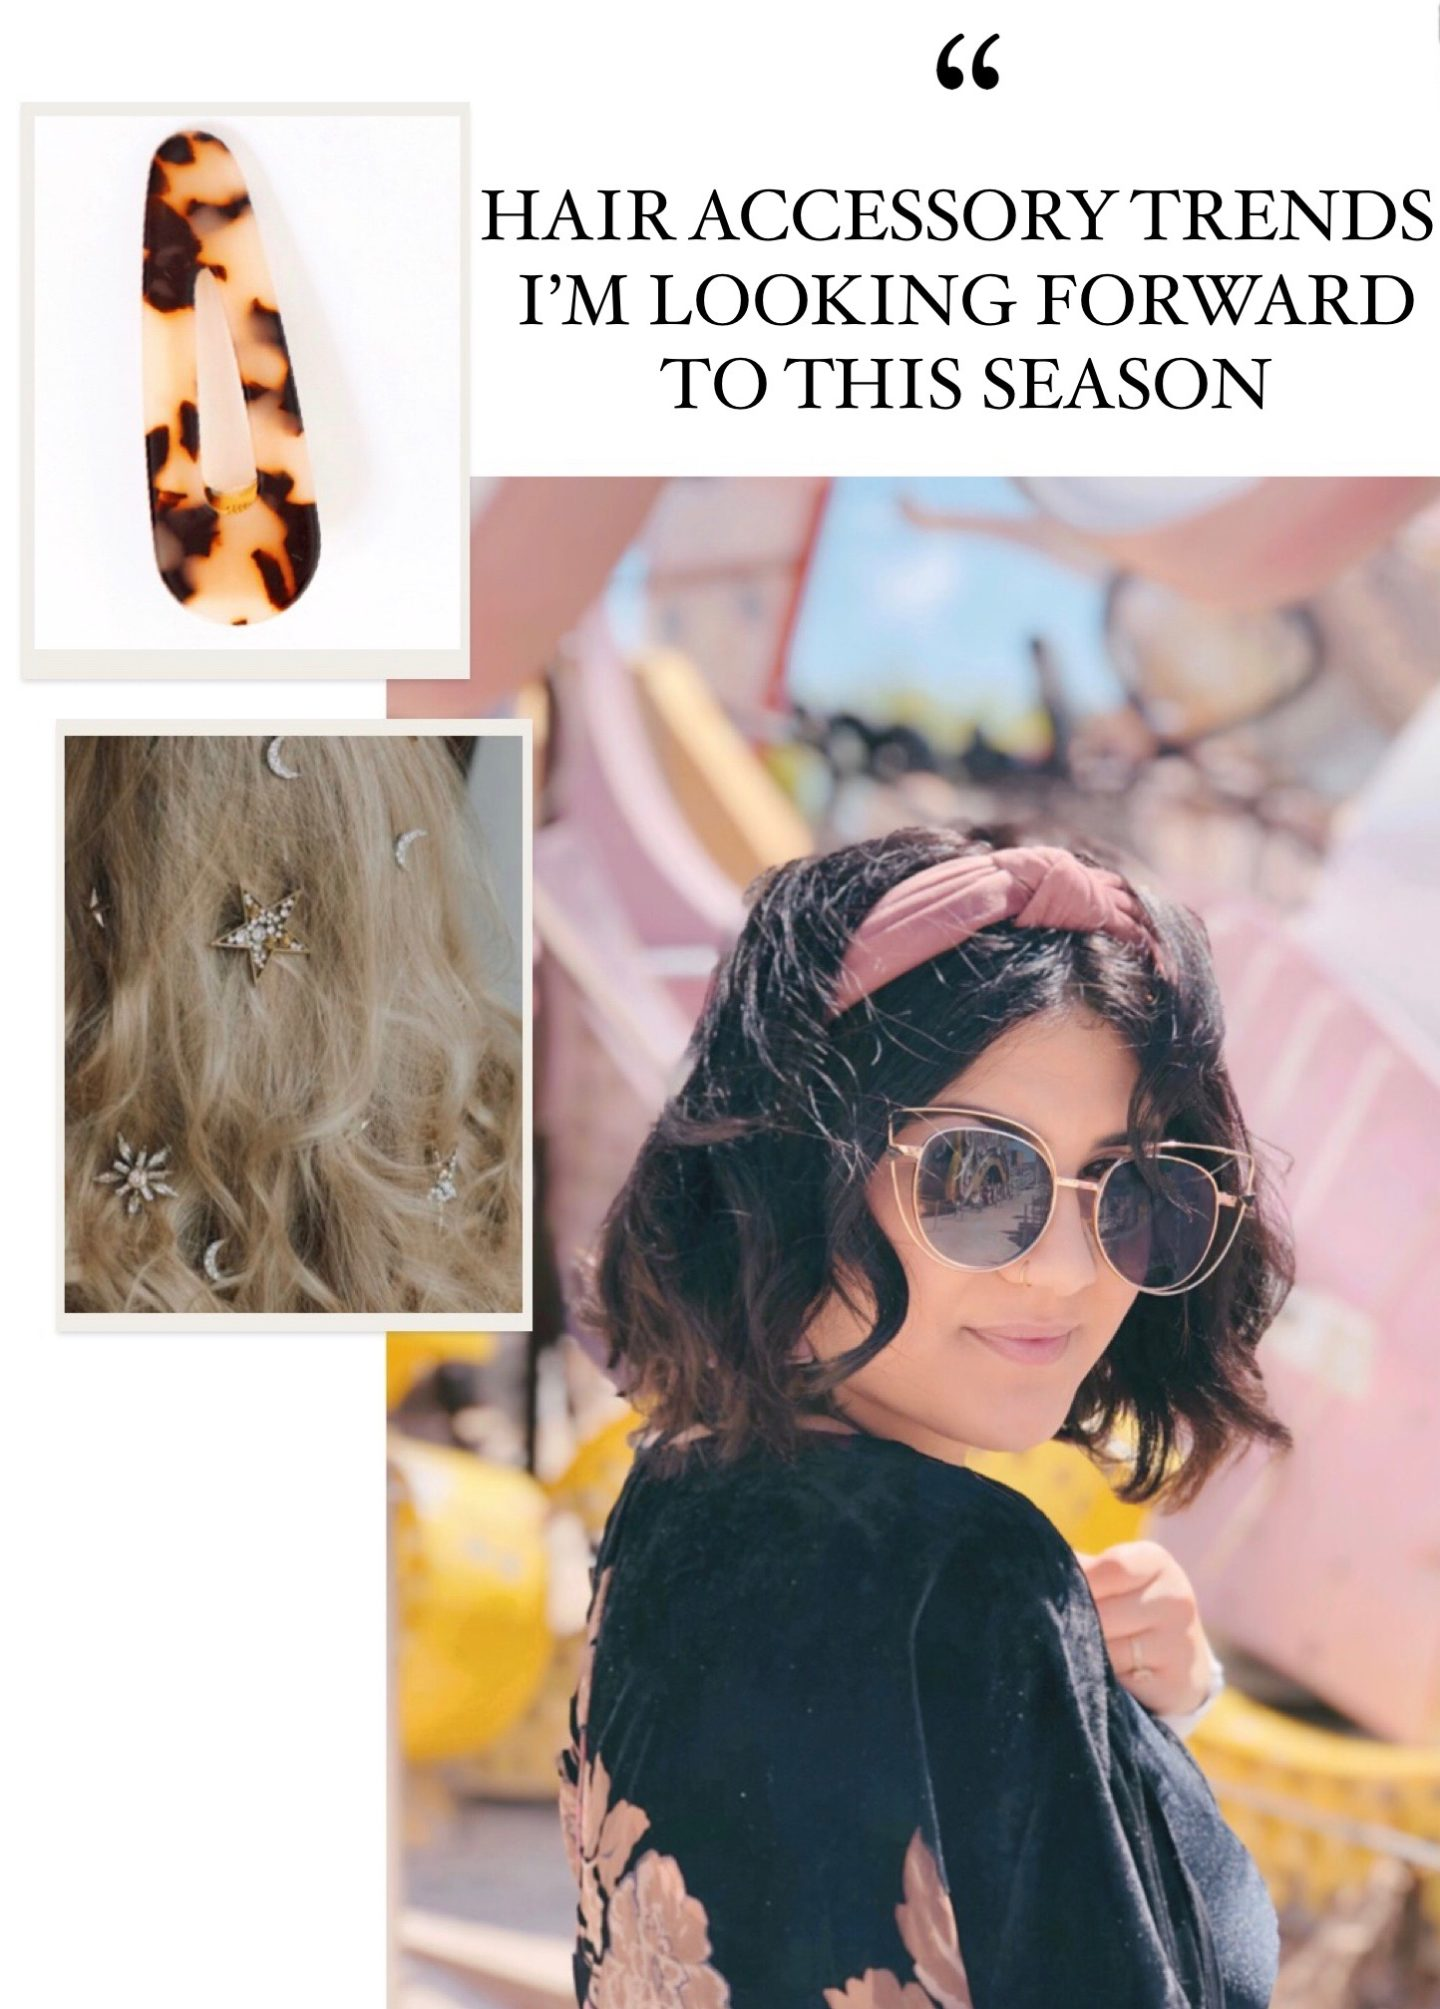 HAIR ACCESSORY TRENDS I'M LOOKING FORWARD TO THIS SEASON  2019